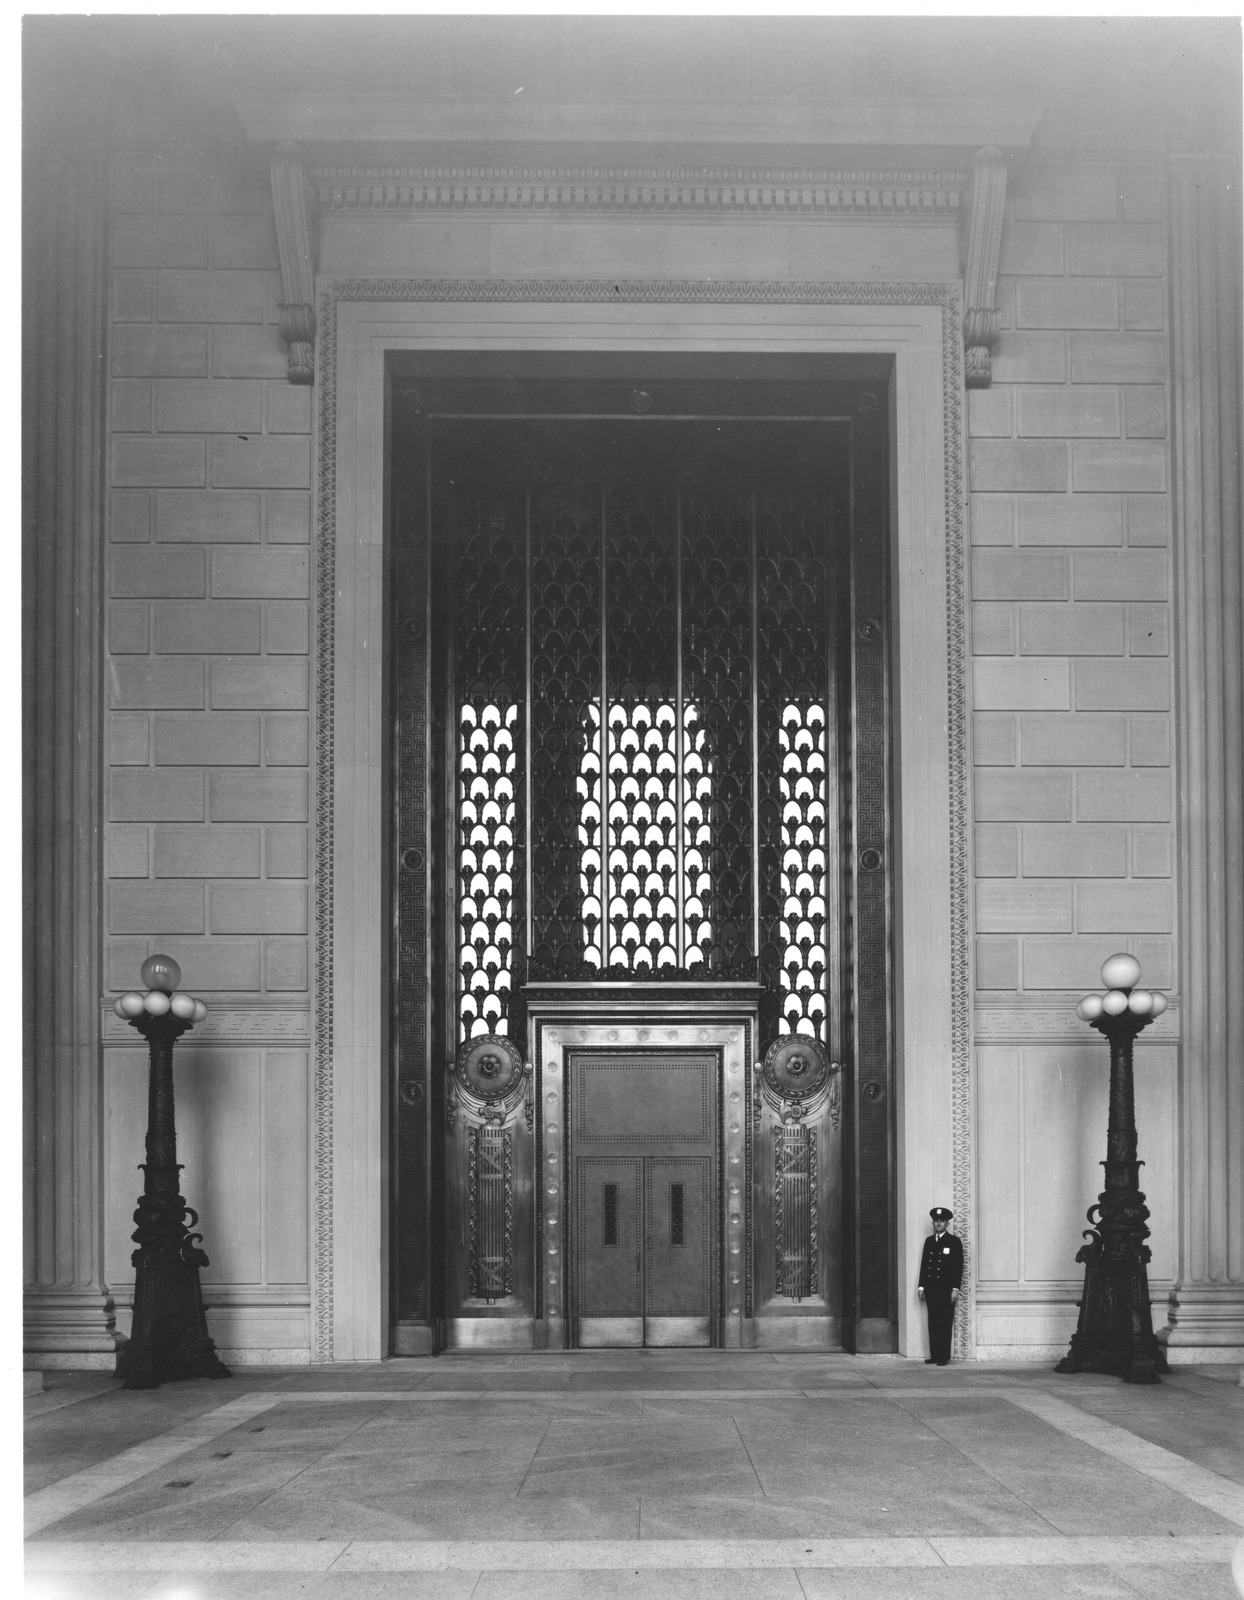 Photograph of the National Archives Building Constitution Avenue Entrance with Bronze Doors Open